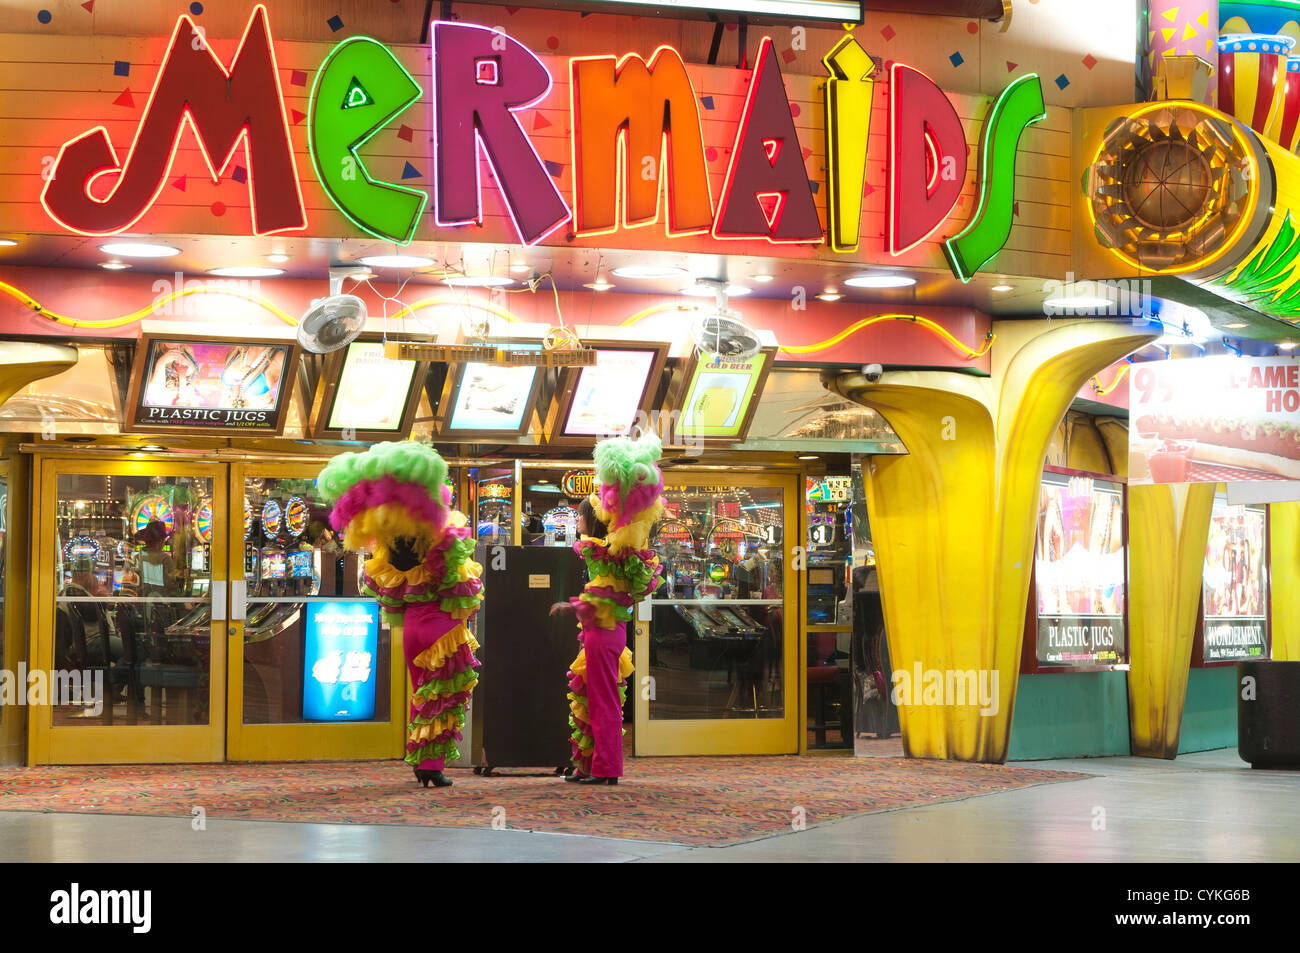 Showgirls In Feathers Outside Mermaids Casino Nighttime At The Stock Photo